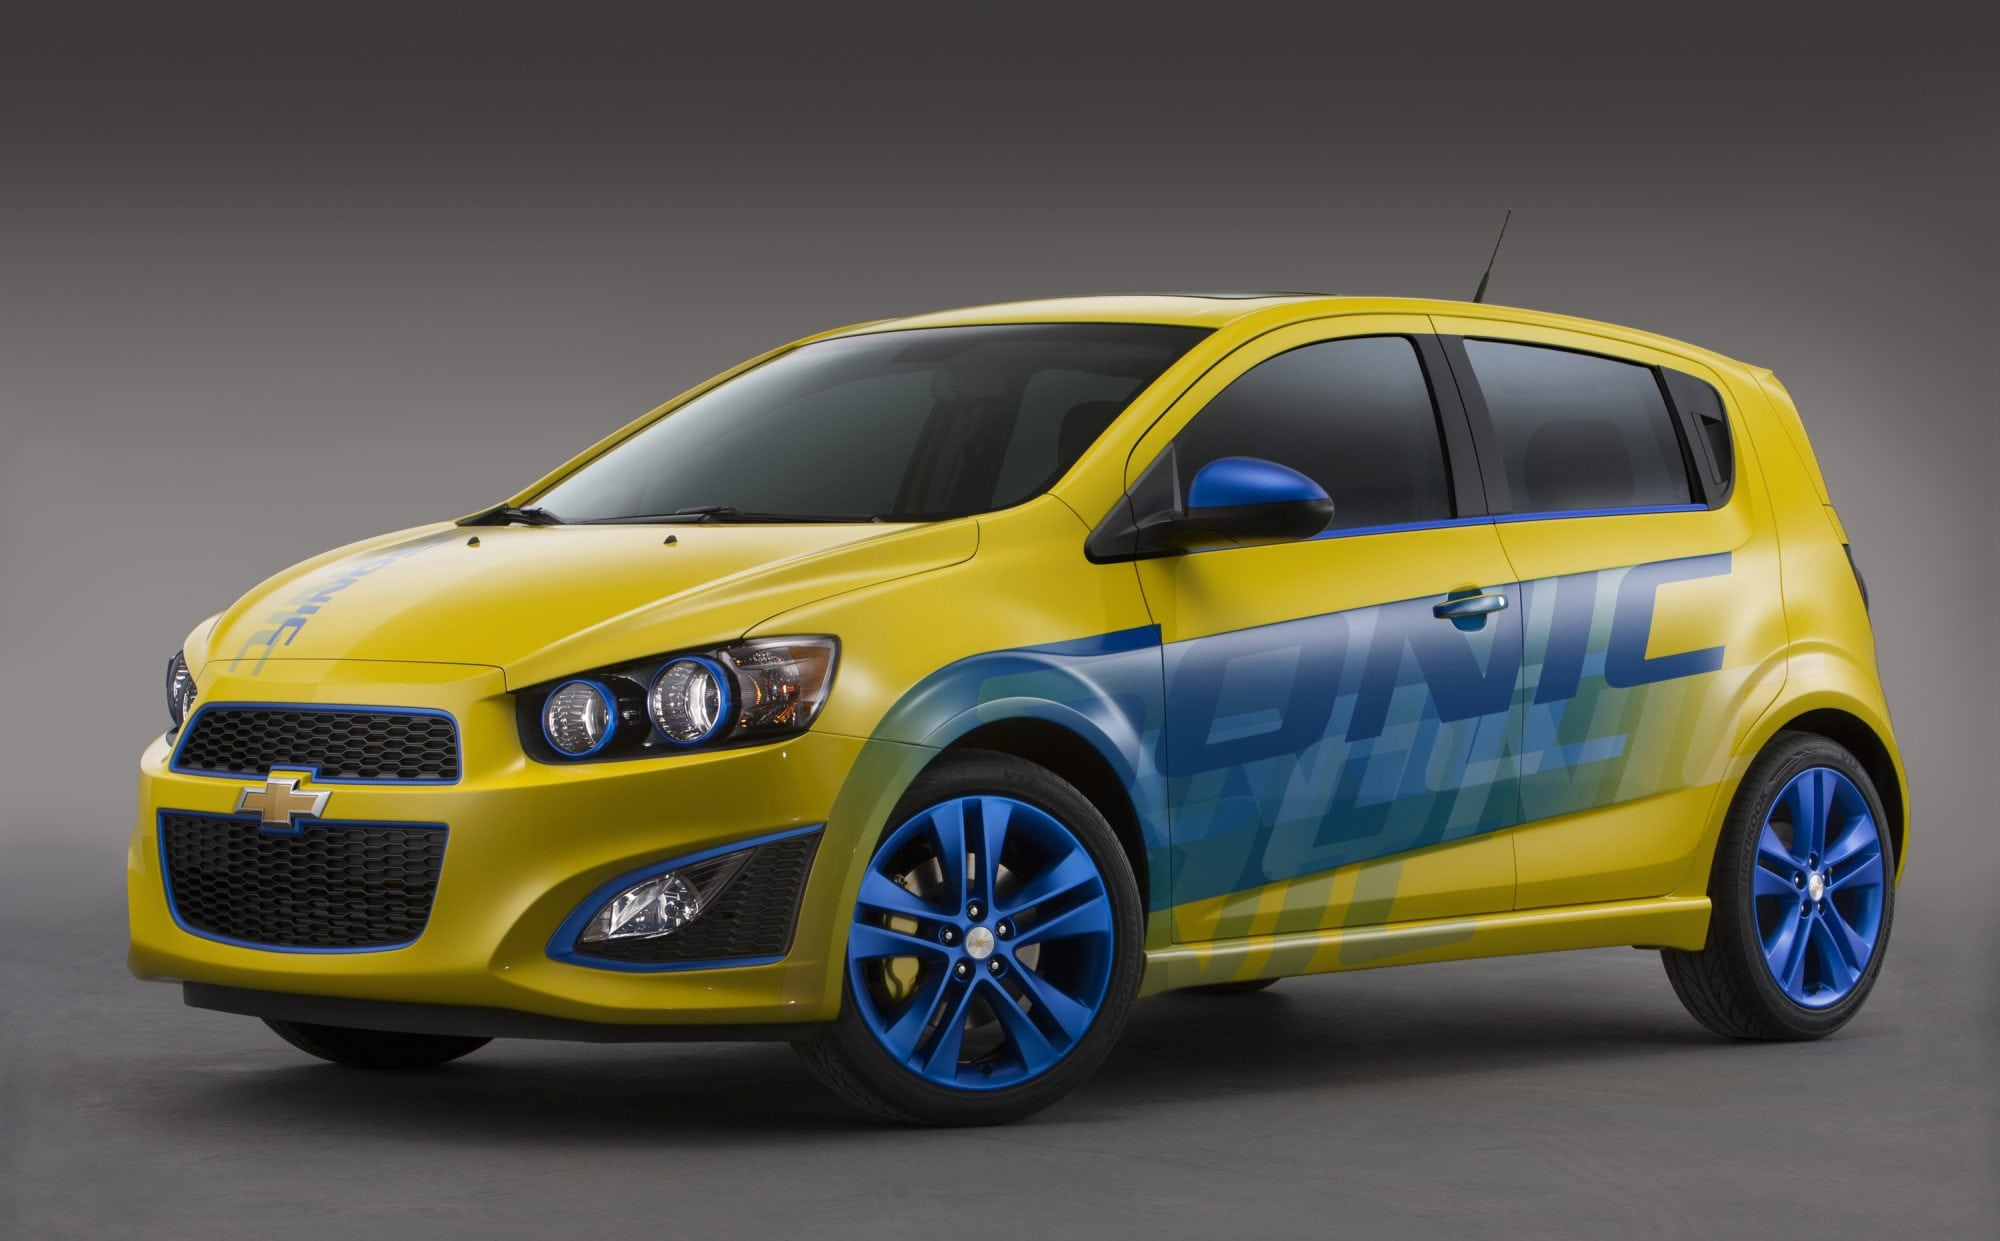 taurus cars s says killed fiesta to report ford be sonic large story money impala gm chevrolet